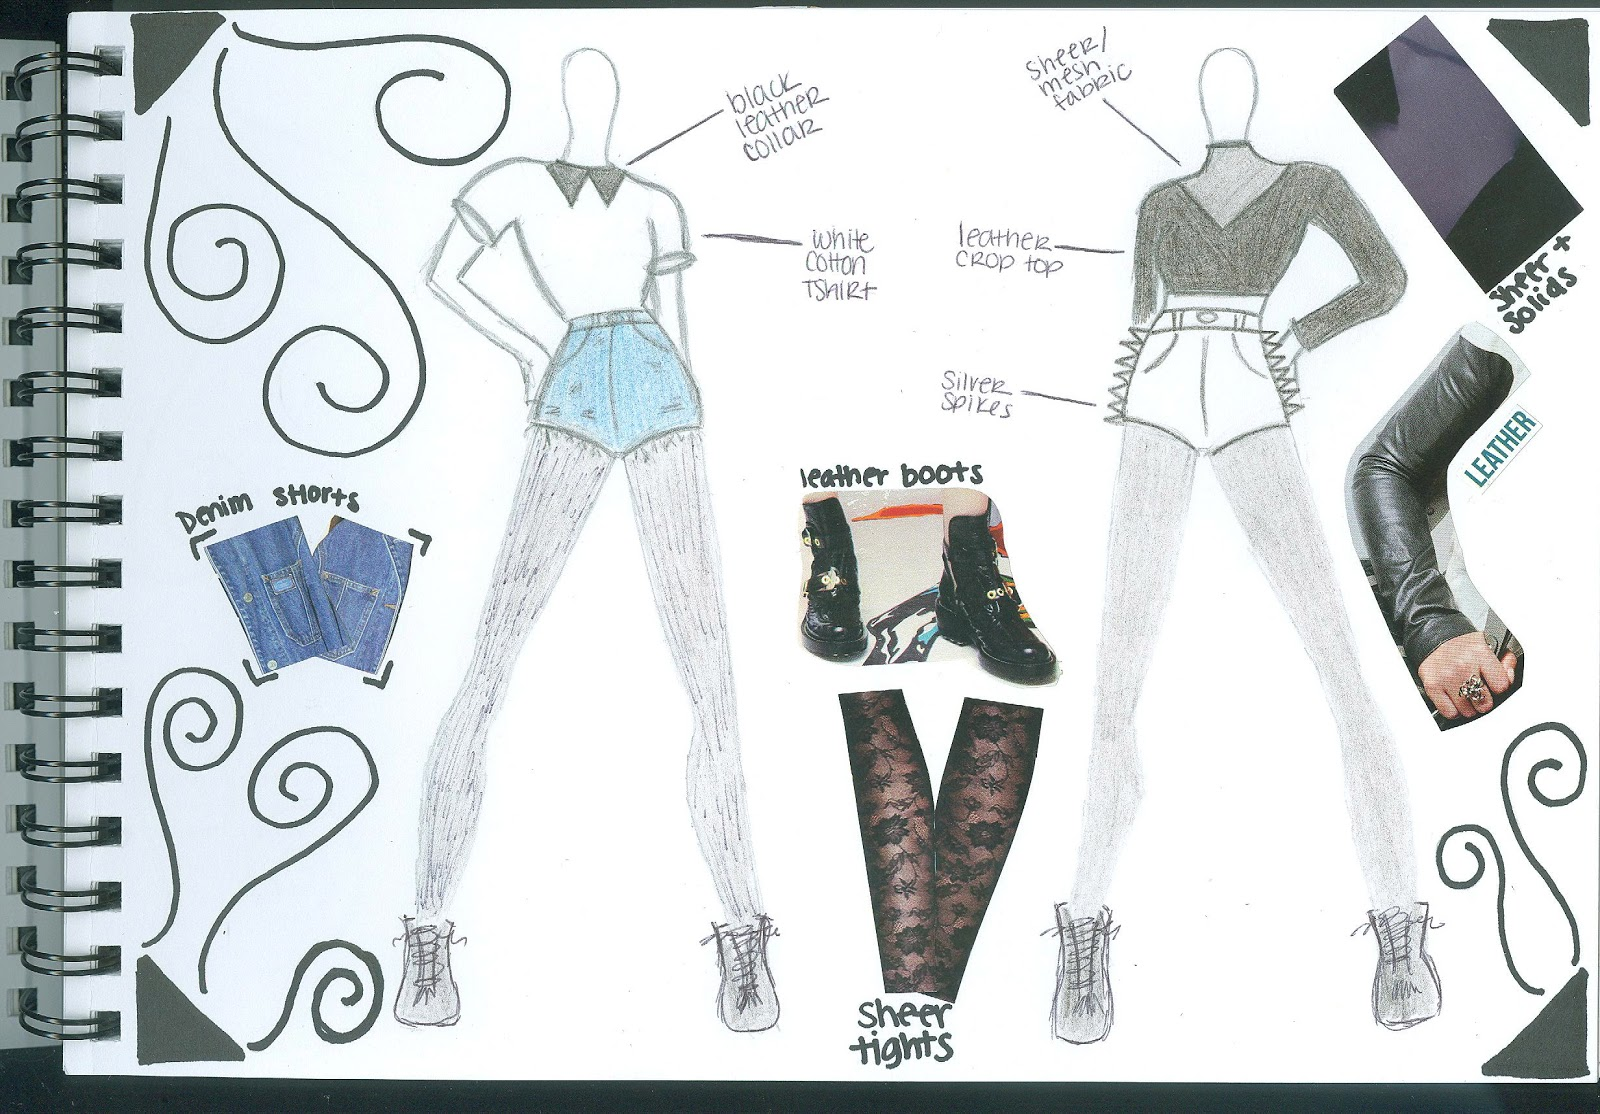 fashion design essays I was rejected @ fit for a non design degree and am reapplying for the fall 2013 term i am so glad to have found this even though i am not going into design fashion is my passion (haha) and incorporating who and what influences me and having an outline for the essay is a start.